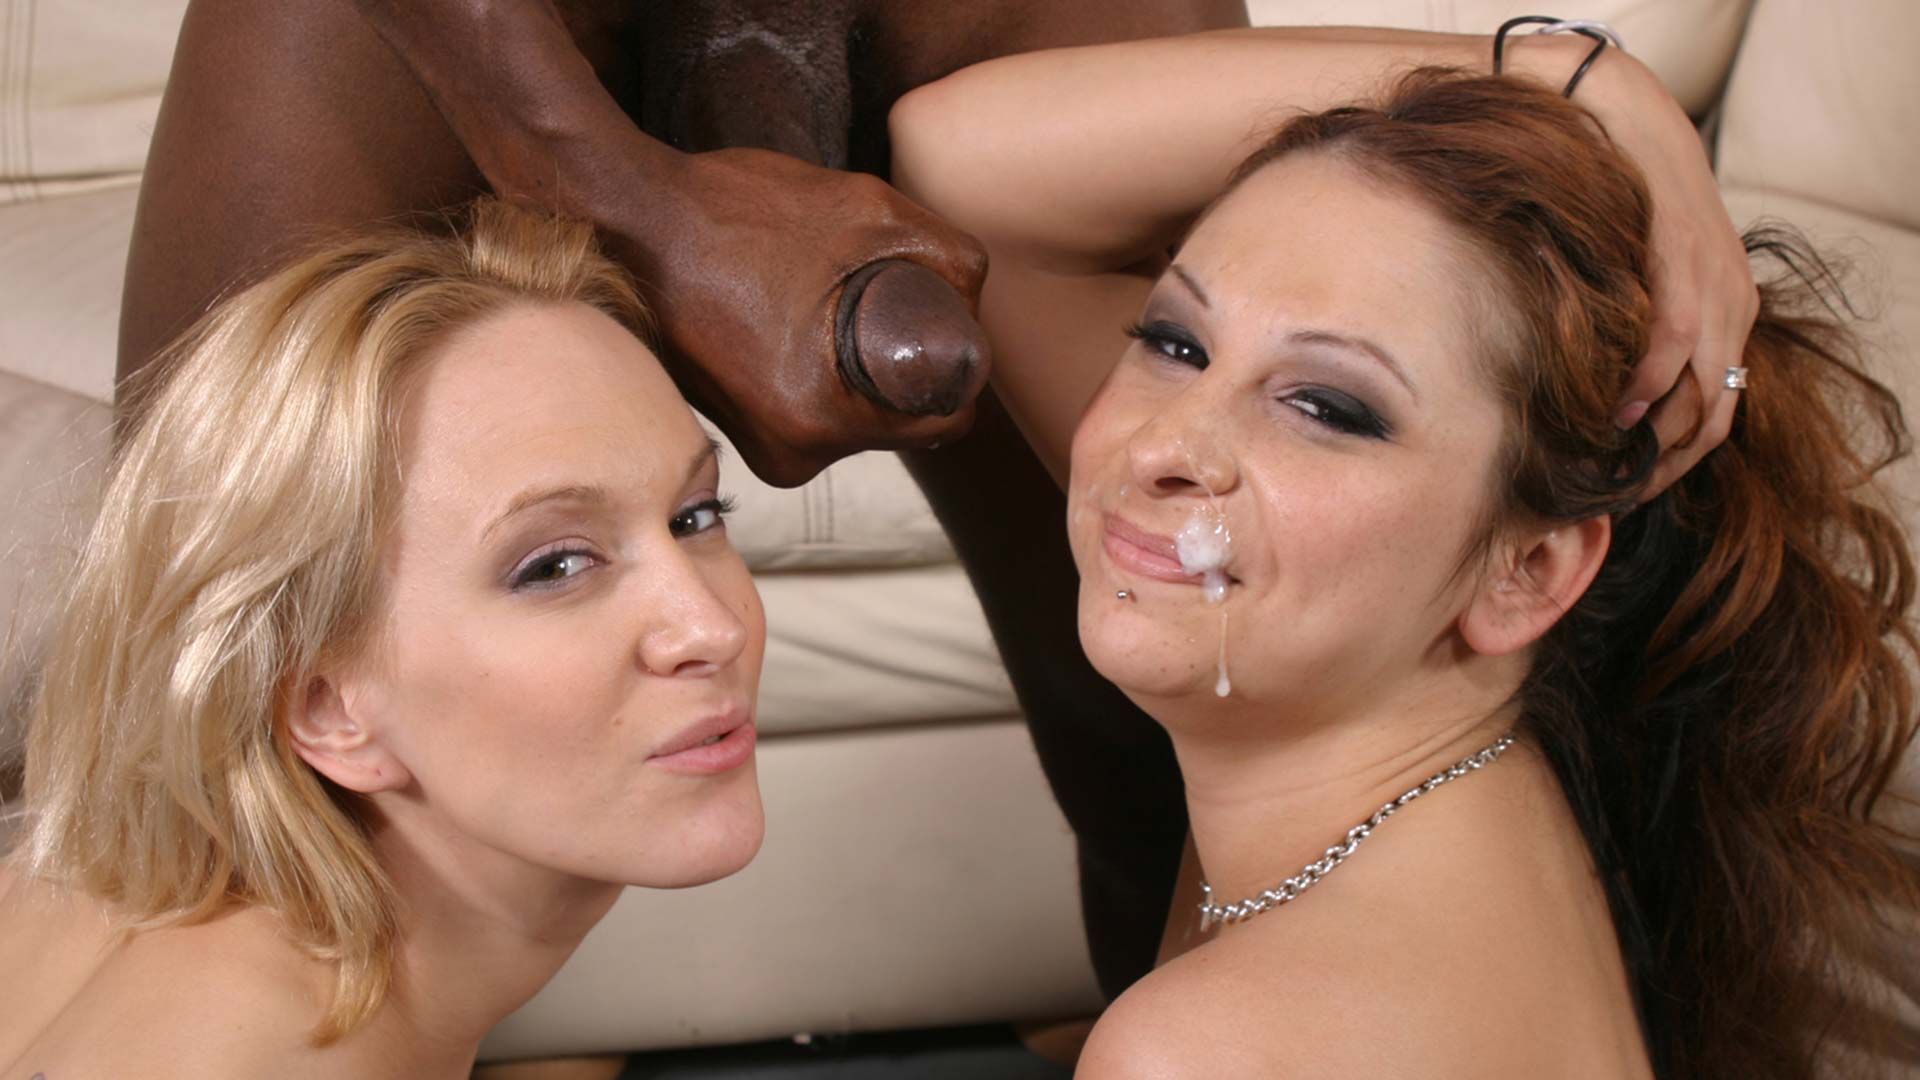 RuthBlackwell Leah Lexington Interracial Porn